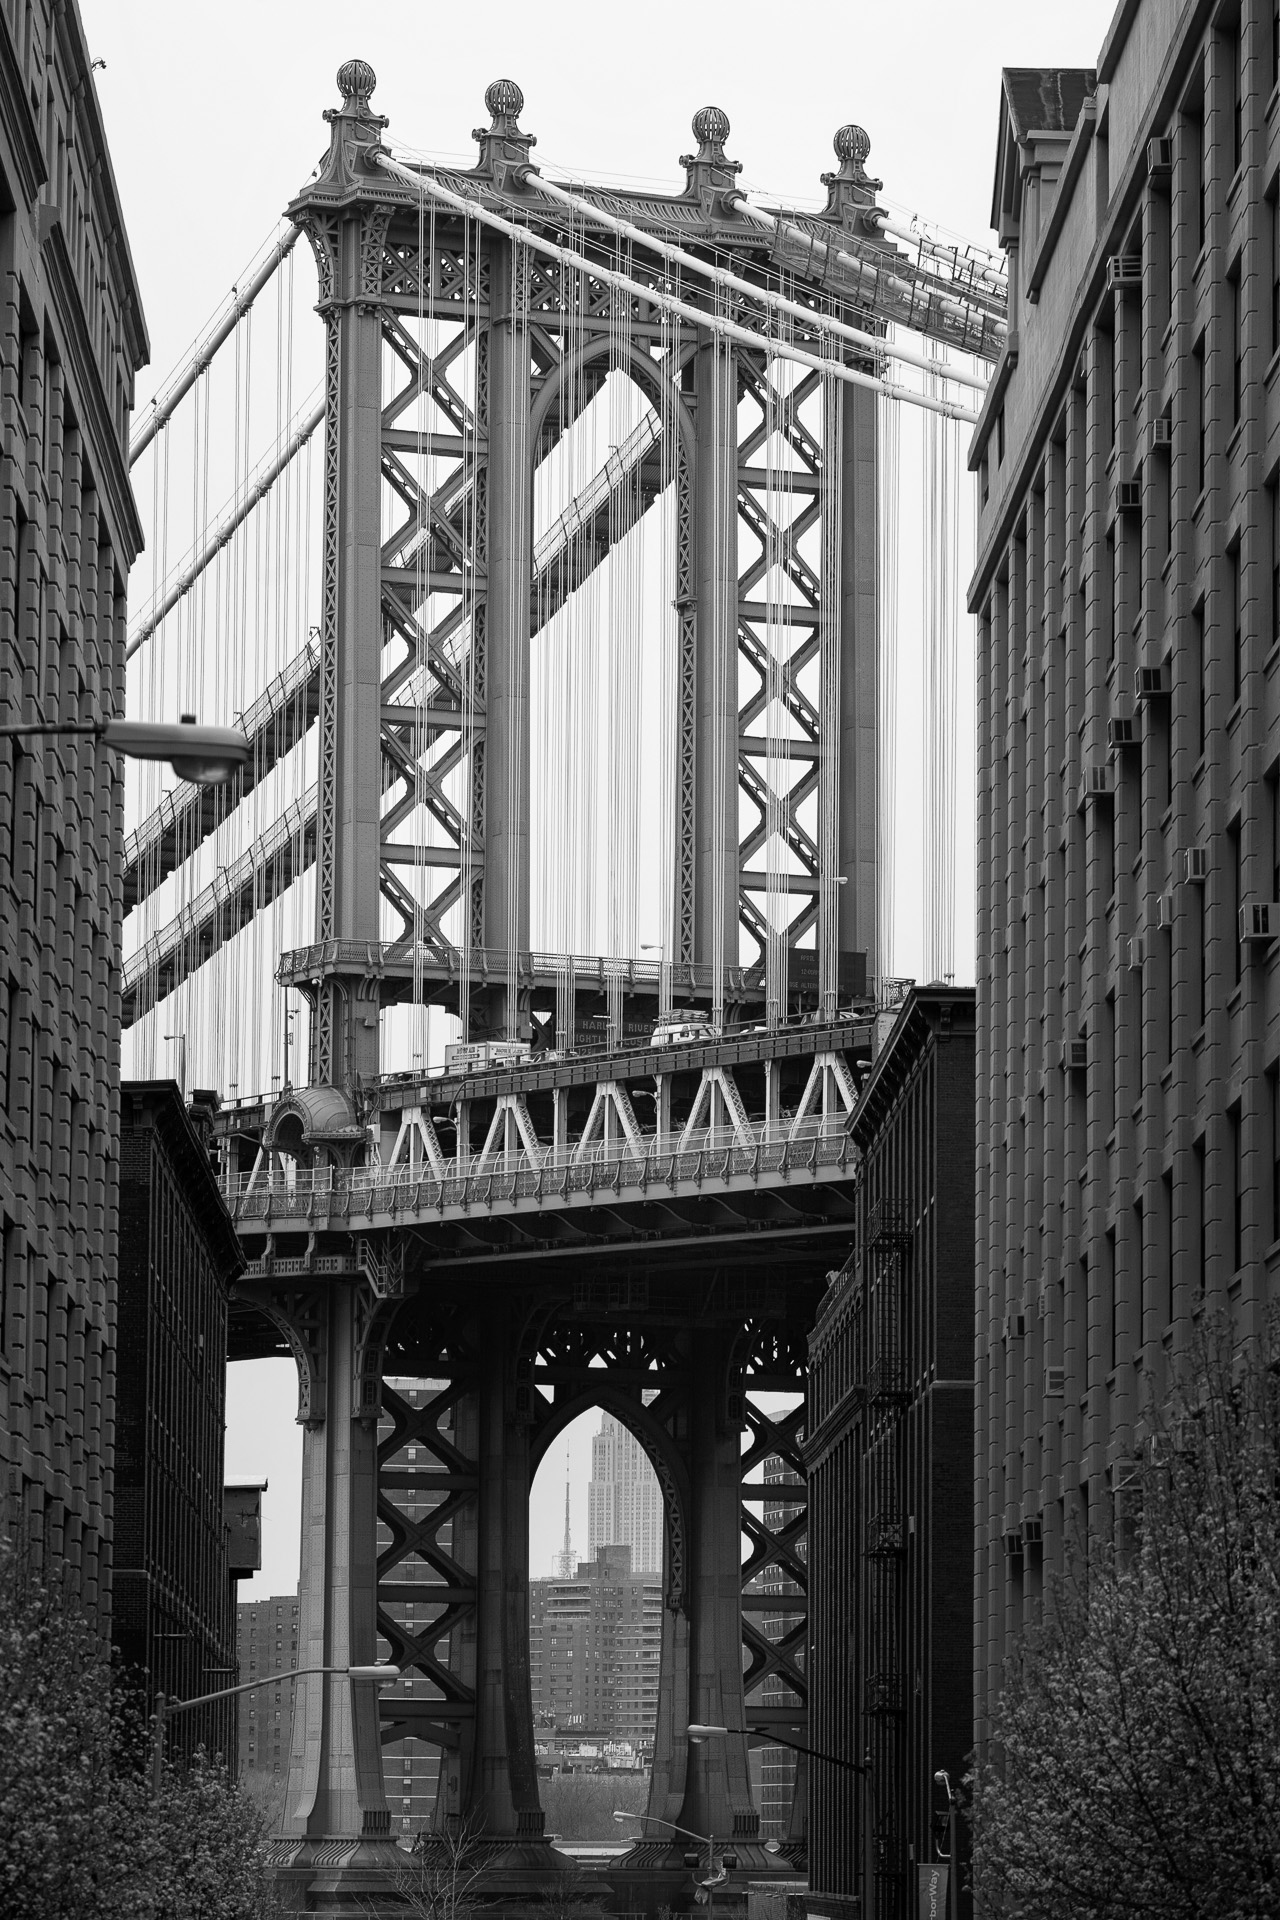 _nf-newyork-manhattanbridge fotografie in bianco e nero